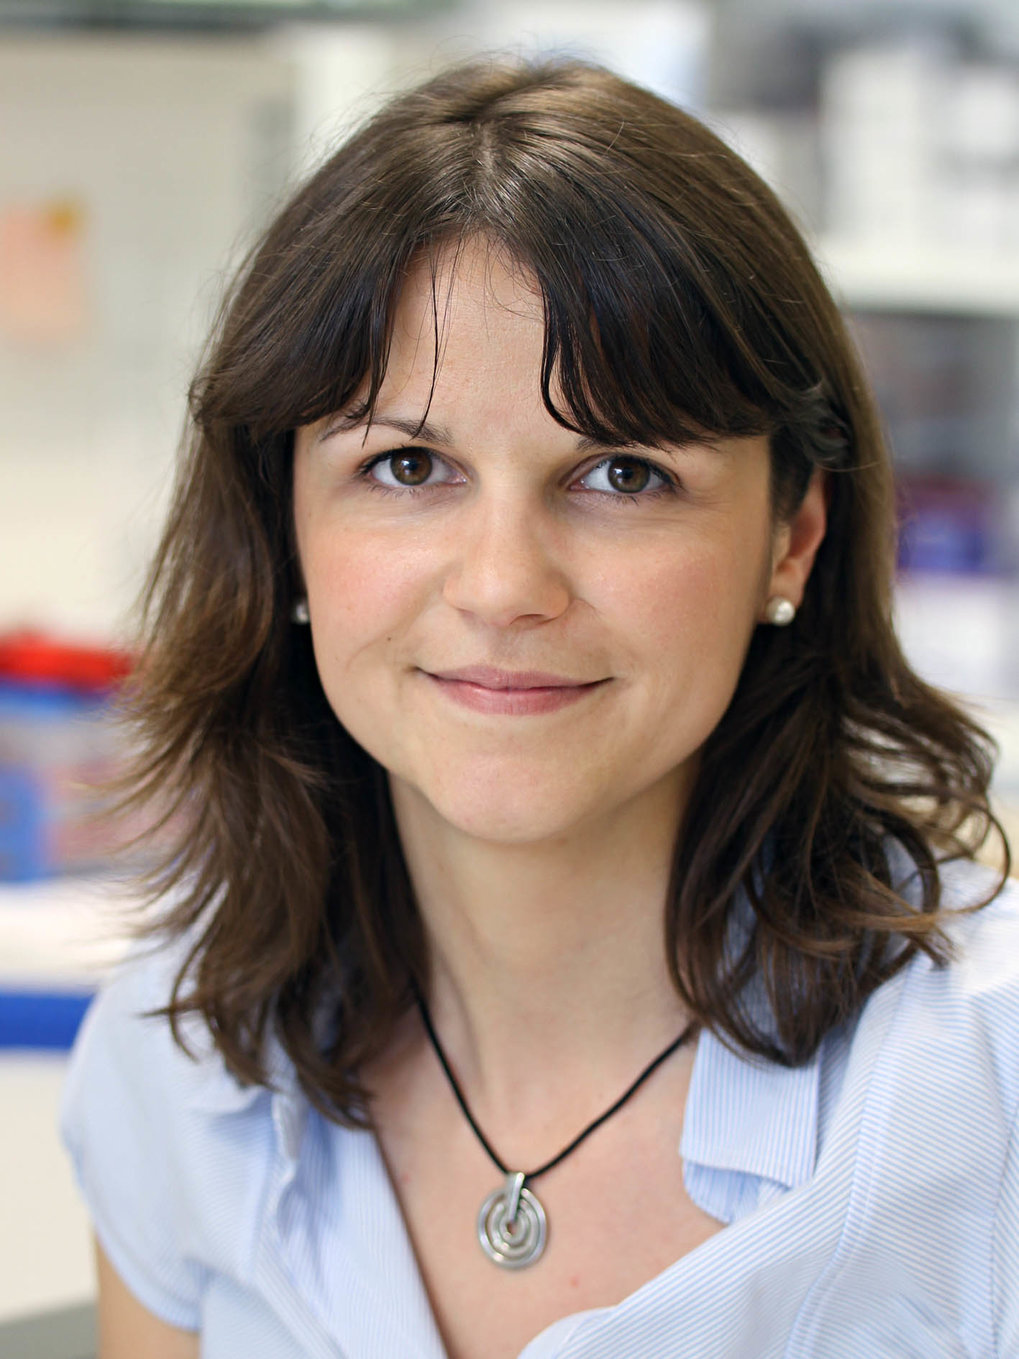 Principal Investigator: Nina Cabezas-WallscheidProject time: 1 May 2018 - 30 April 2023The projects investigates the role of Vitamin A for HSC dormancy aims to break new ground in uncovering the signalling pathways and extracellular biochemical stimuli that balance HSC maintenance and differentiation. The ultimate goal of the project is to translate the findings to targeted therapies for human diseases such as cancer.